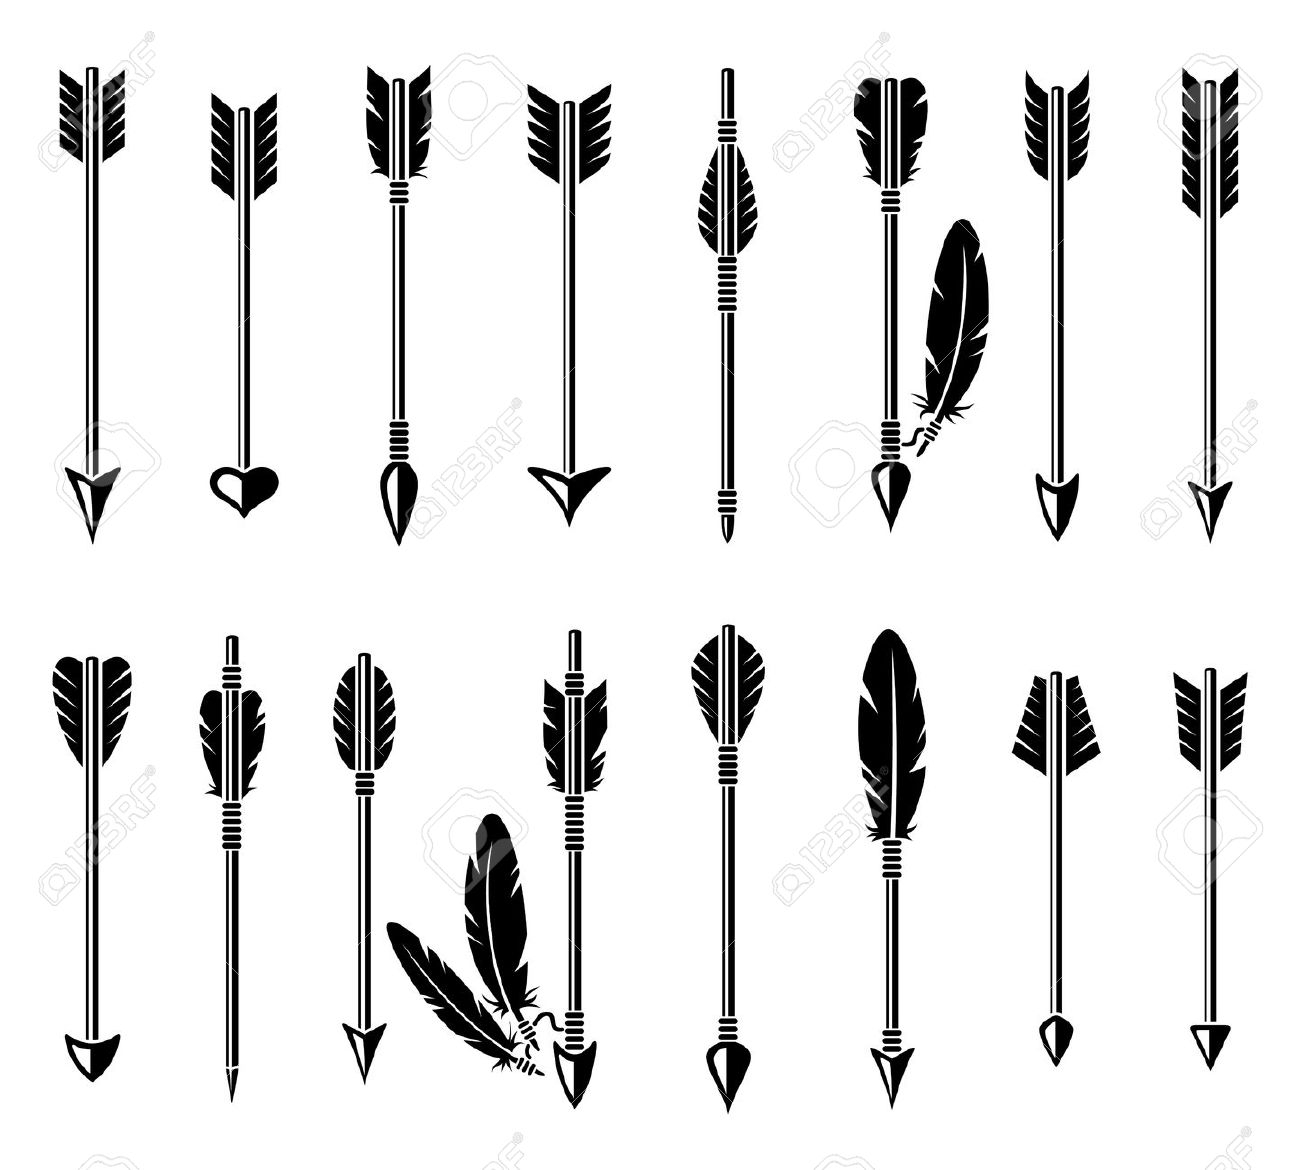 Arrow with feather clipart png freeuse library Arrow with feathers clipart - ClipartFest png freeuse library